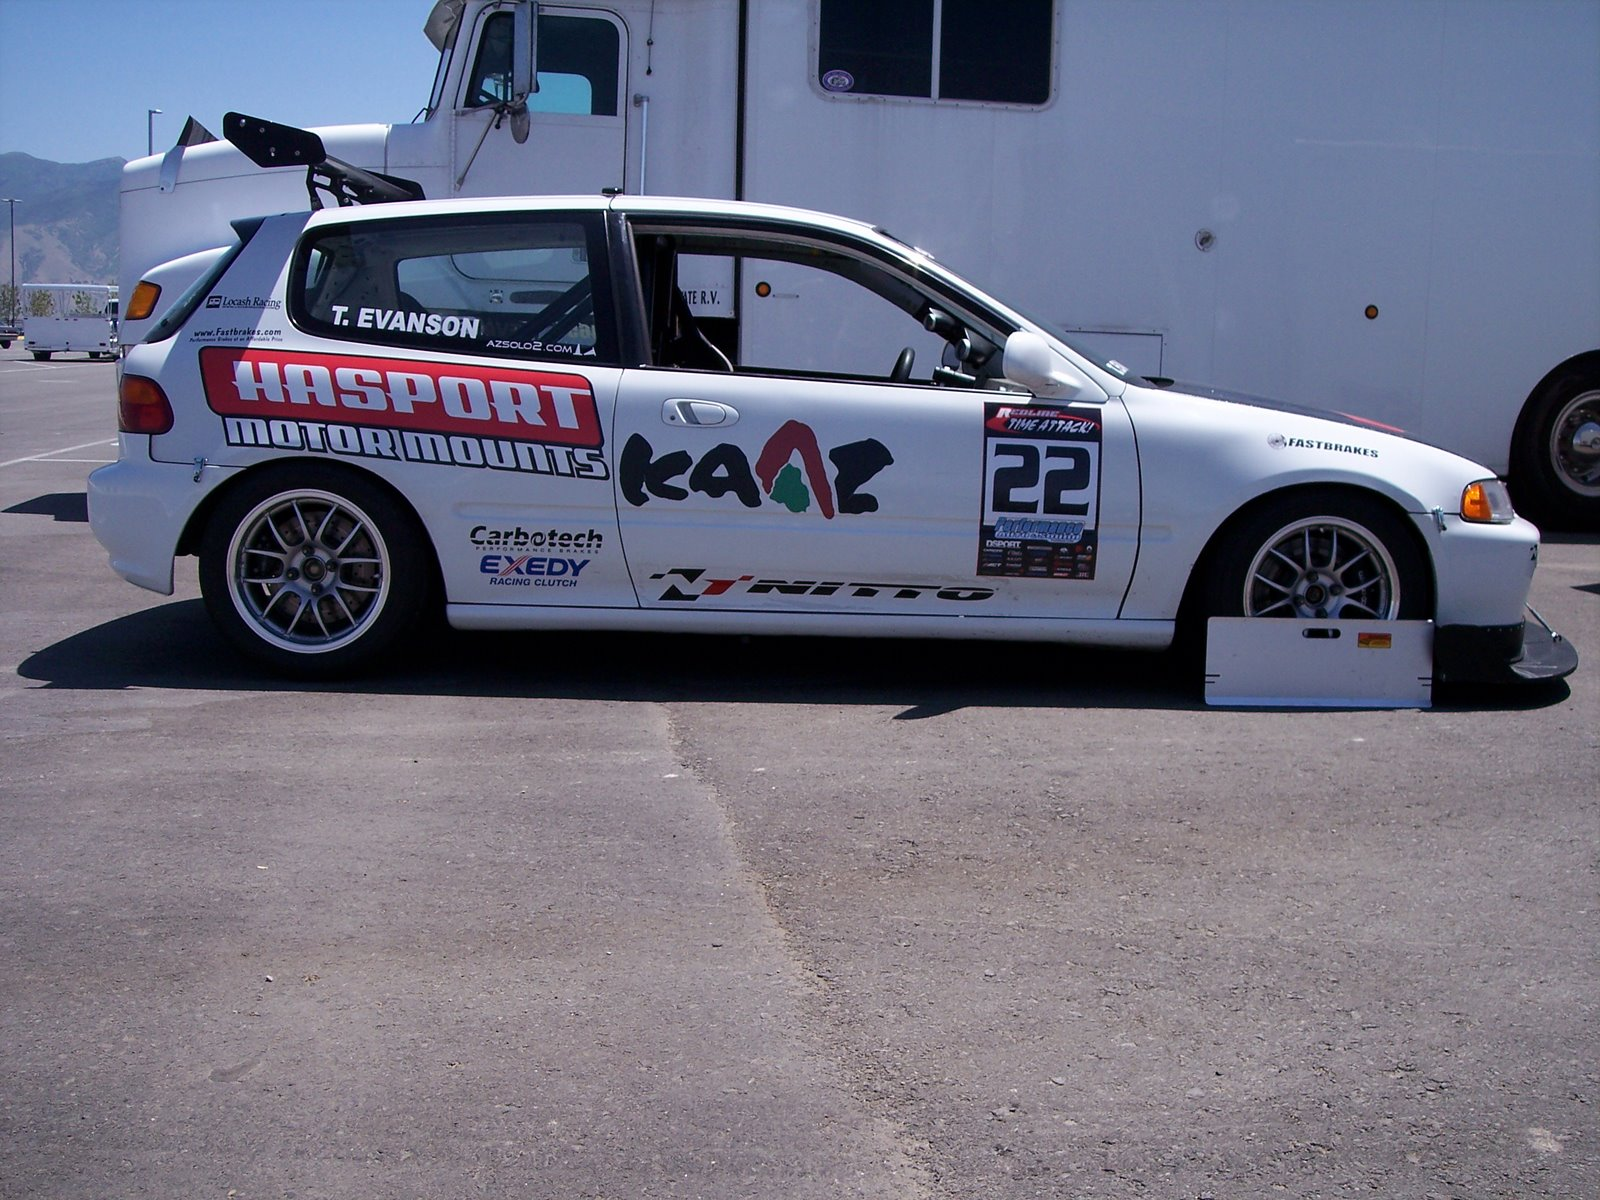 Side profile of the Hasport/Kaaz sponsored K powered Civic FF Time Attack racer